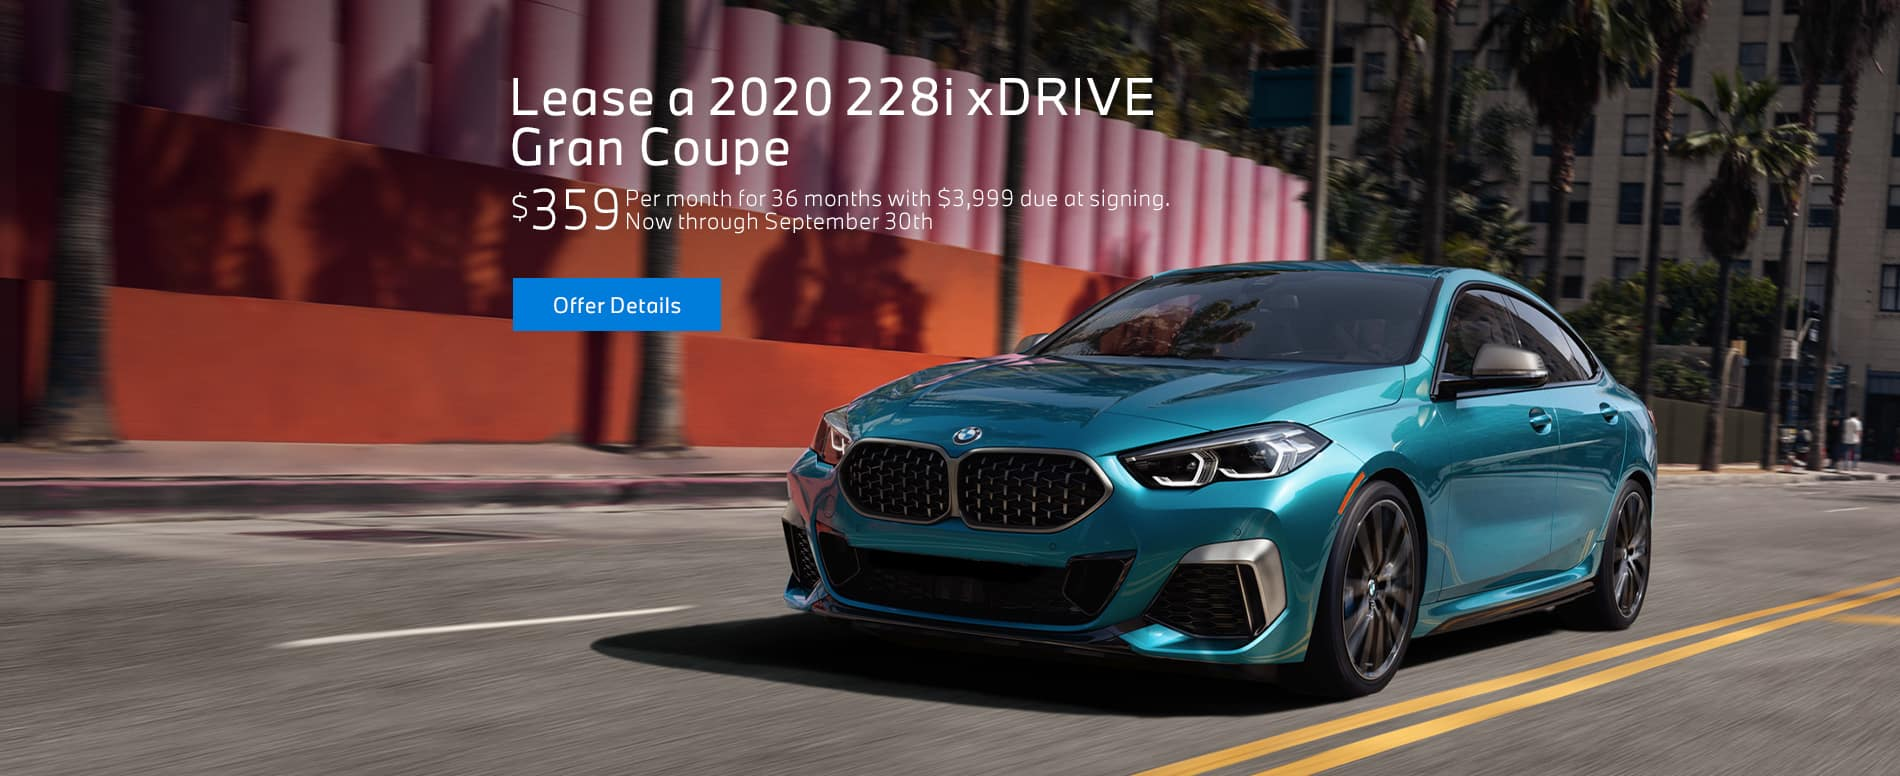 Lease a 2020 228i xDrive Gran Coupe at BMW of Fort Walton Beach!